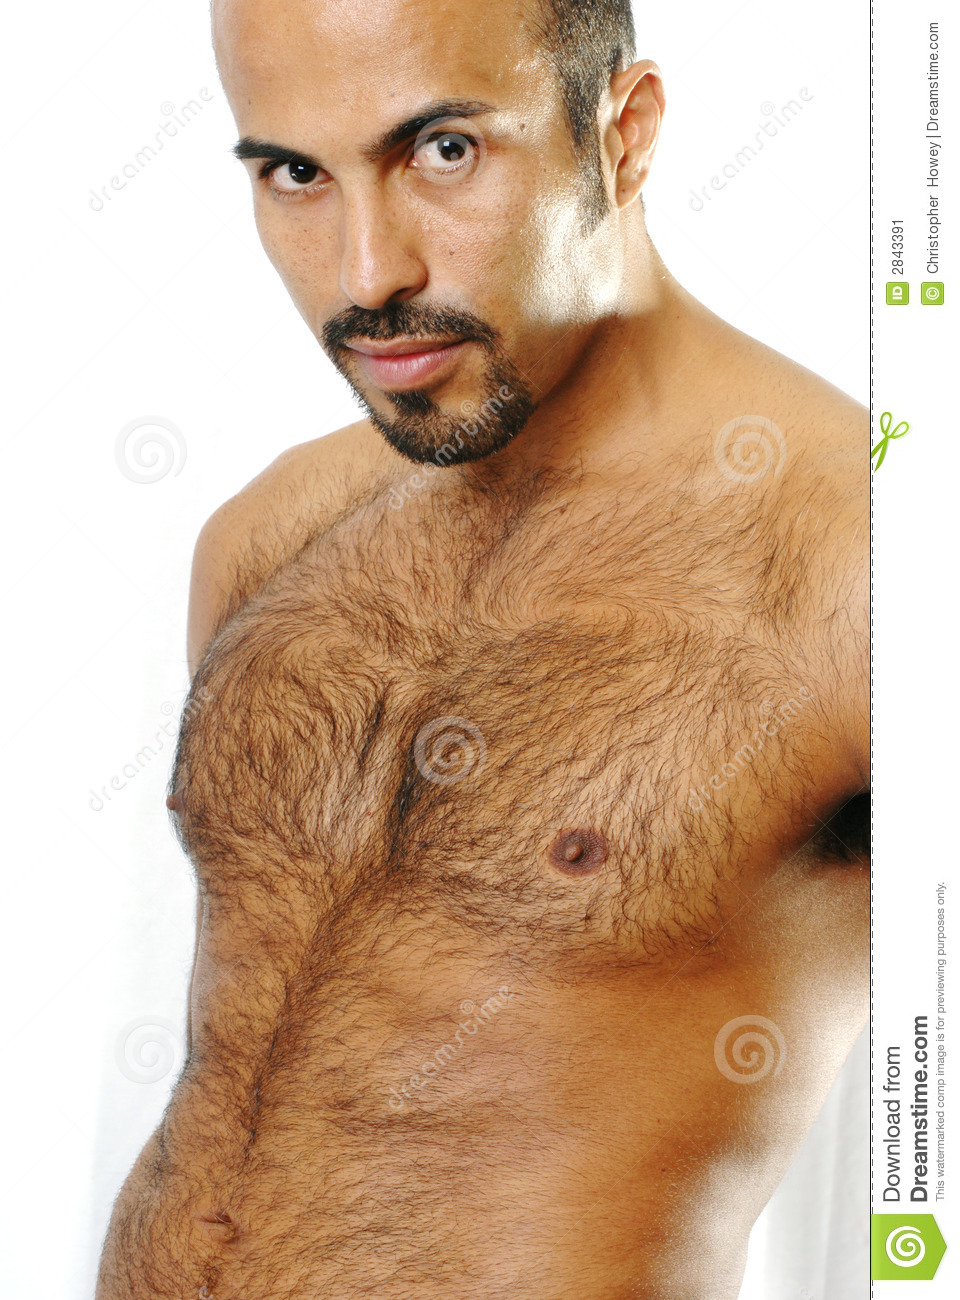 This image shows the torso of a muscular hispanic man with trimmed